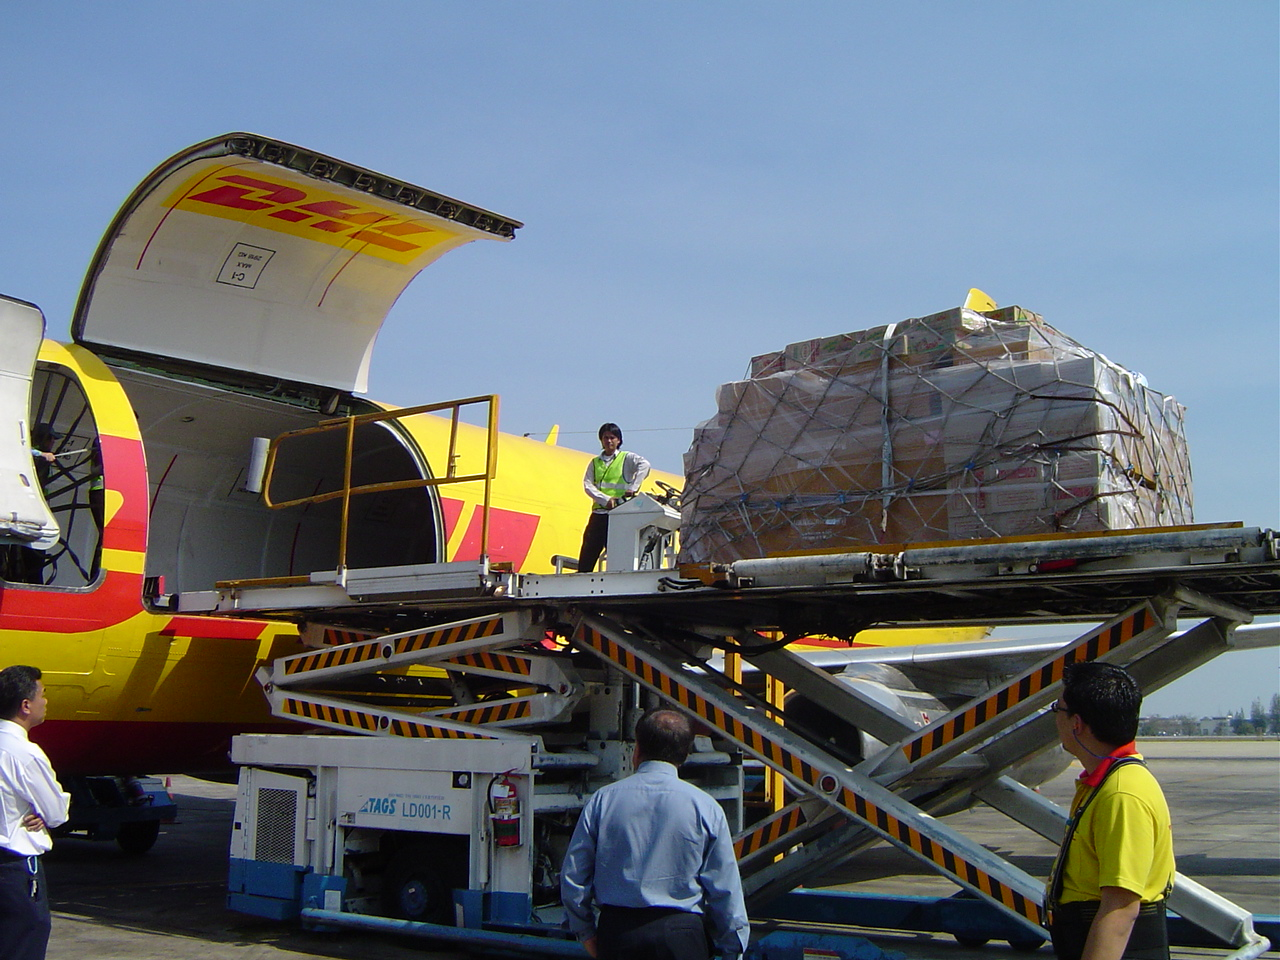 Loading of relief supplies onto a DHL plane in aid of Tsunami victims in 2004 ## Verladung von Hilfsguetern in ein DHL-Flugzeug waehrend der Tsunami-Katastrophe 2004